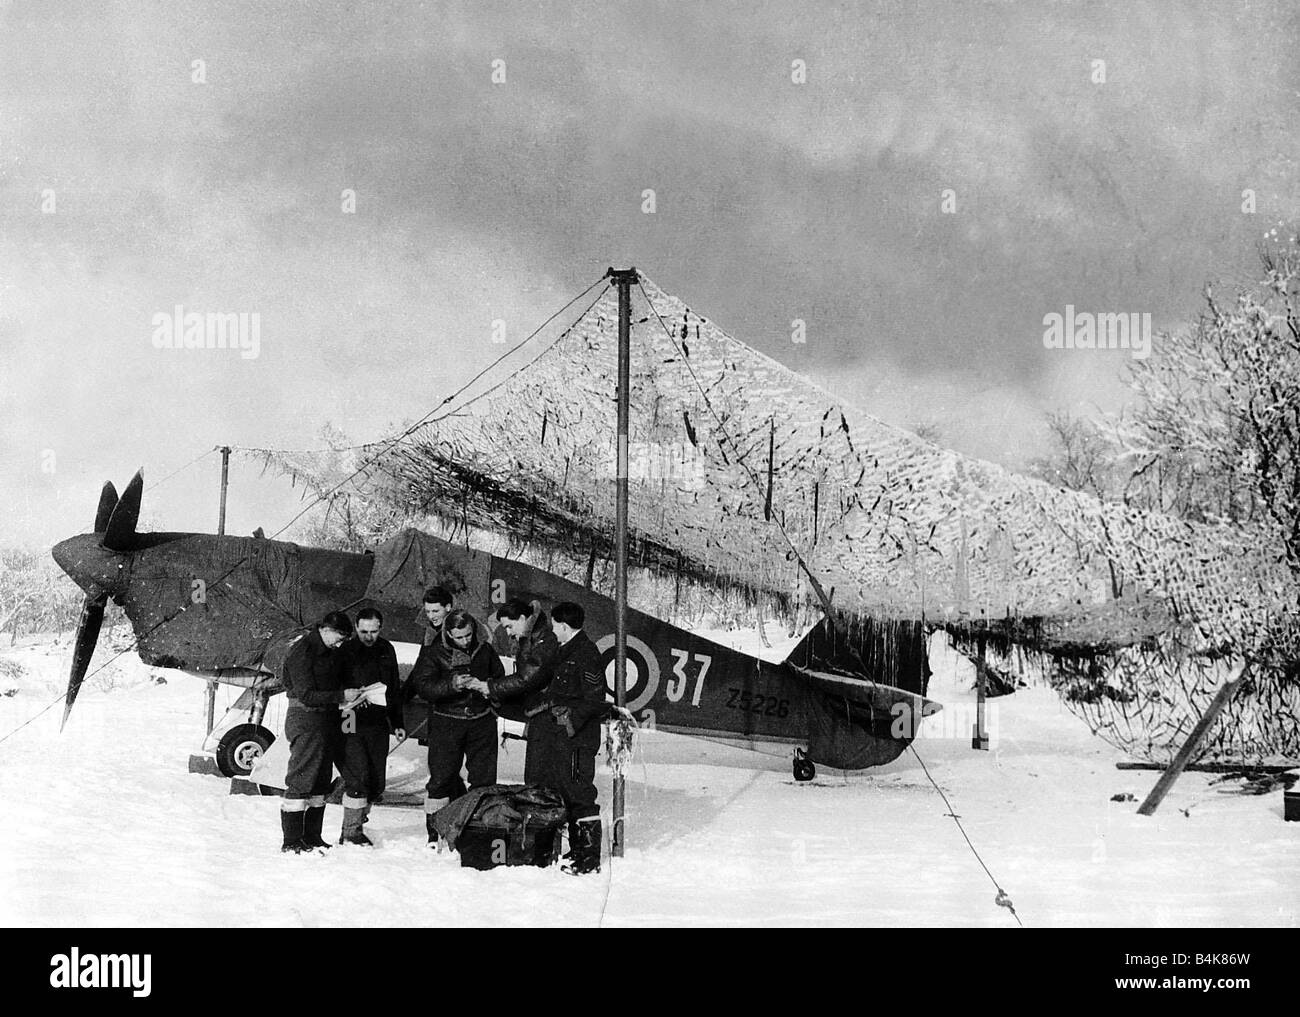 An RAF Hurricane in a snow covered field in Russia during WW2 1942 - Stock Image